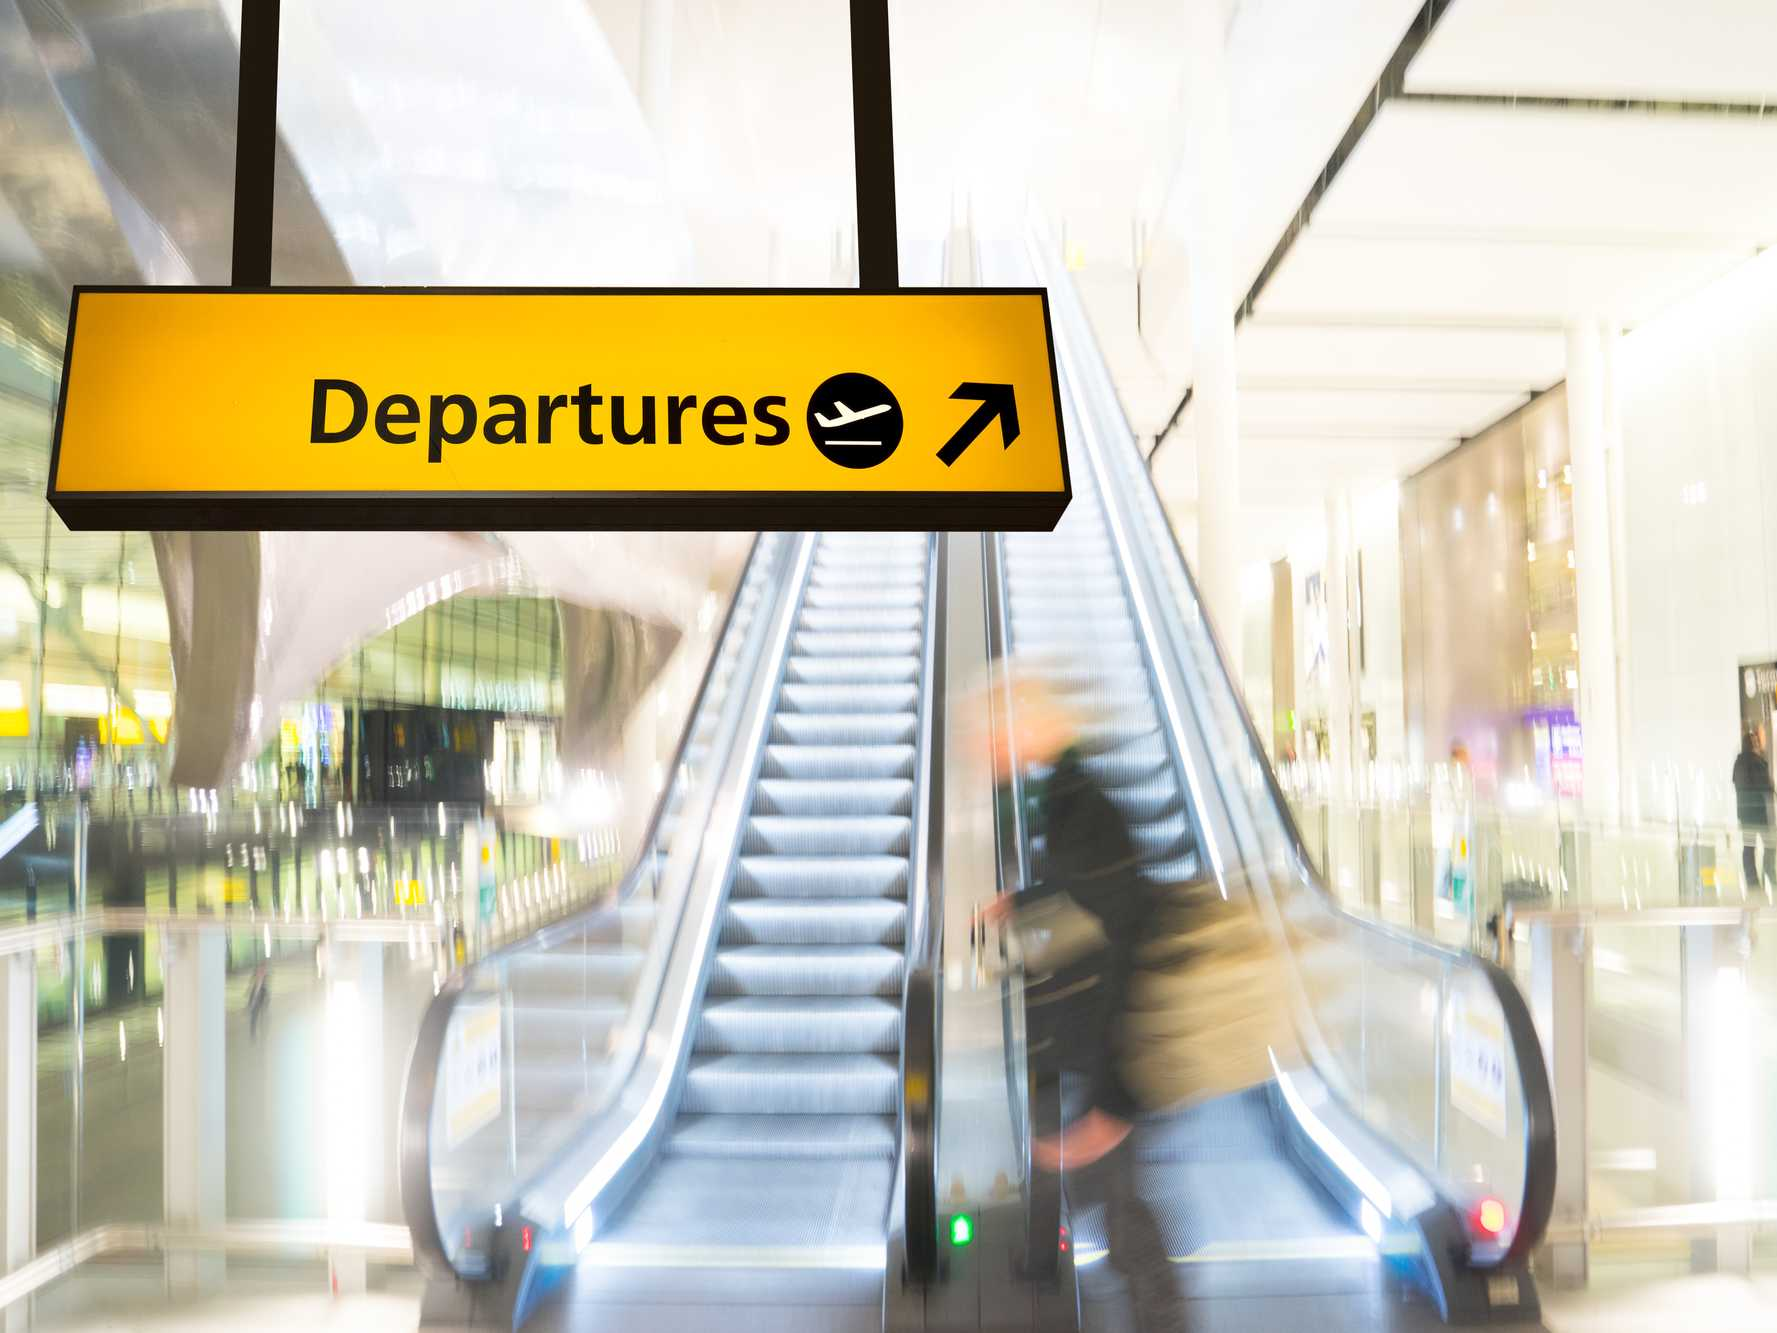 airport scene with departures sign.